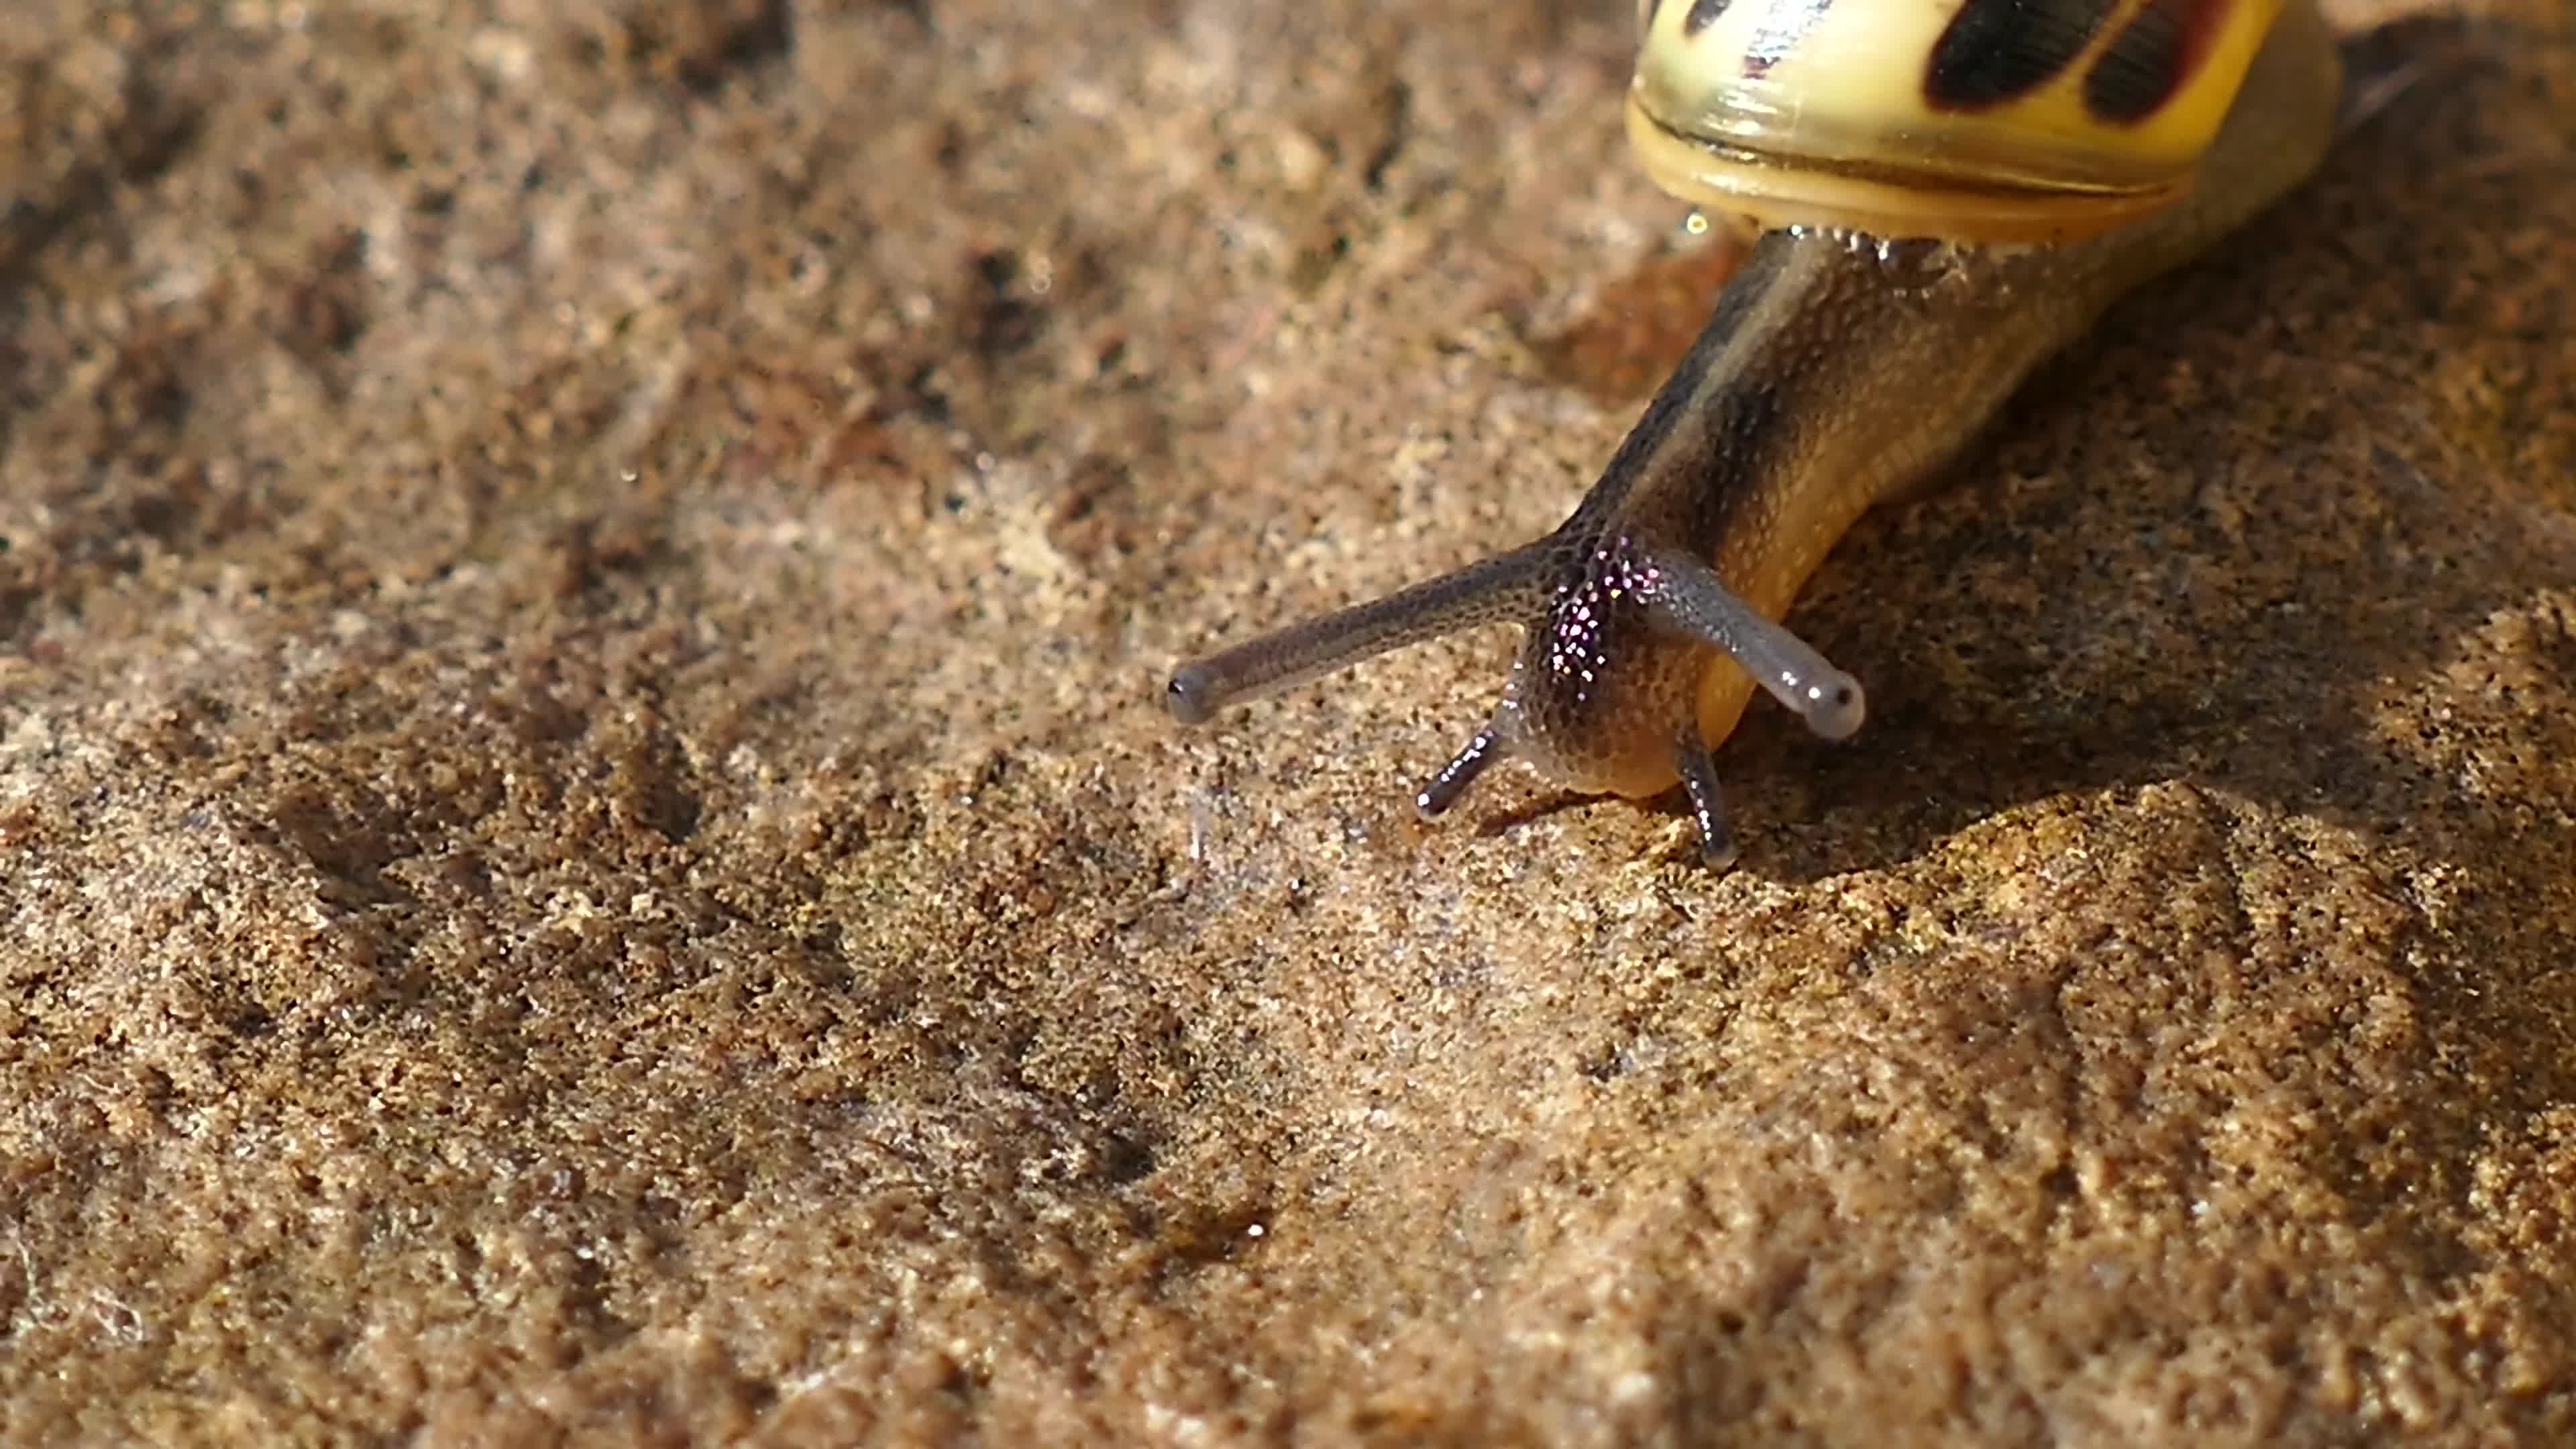 Close up video of snail